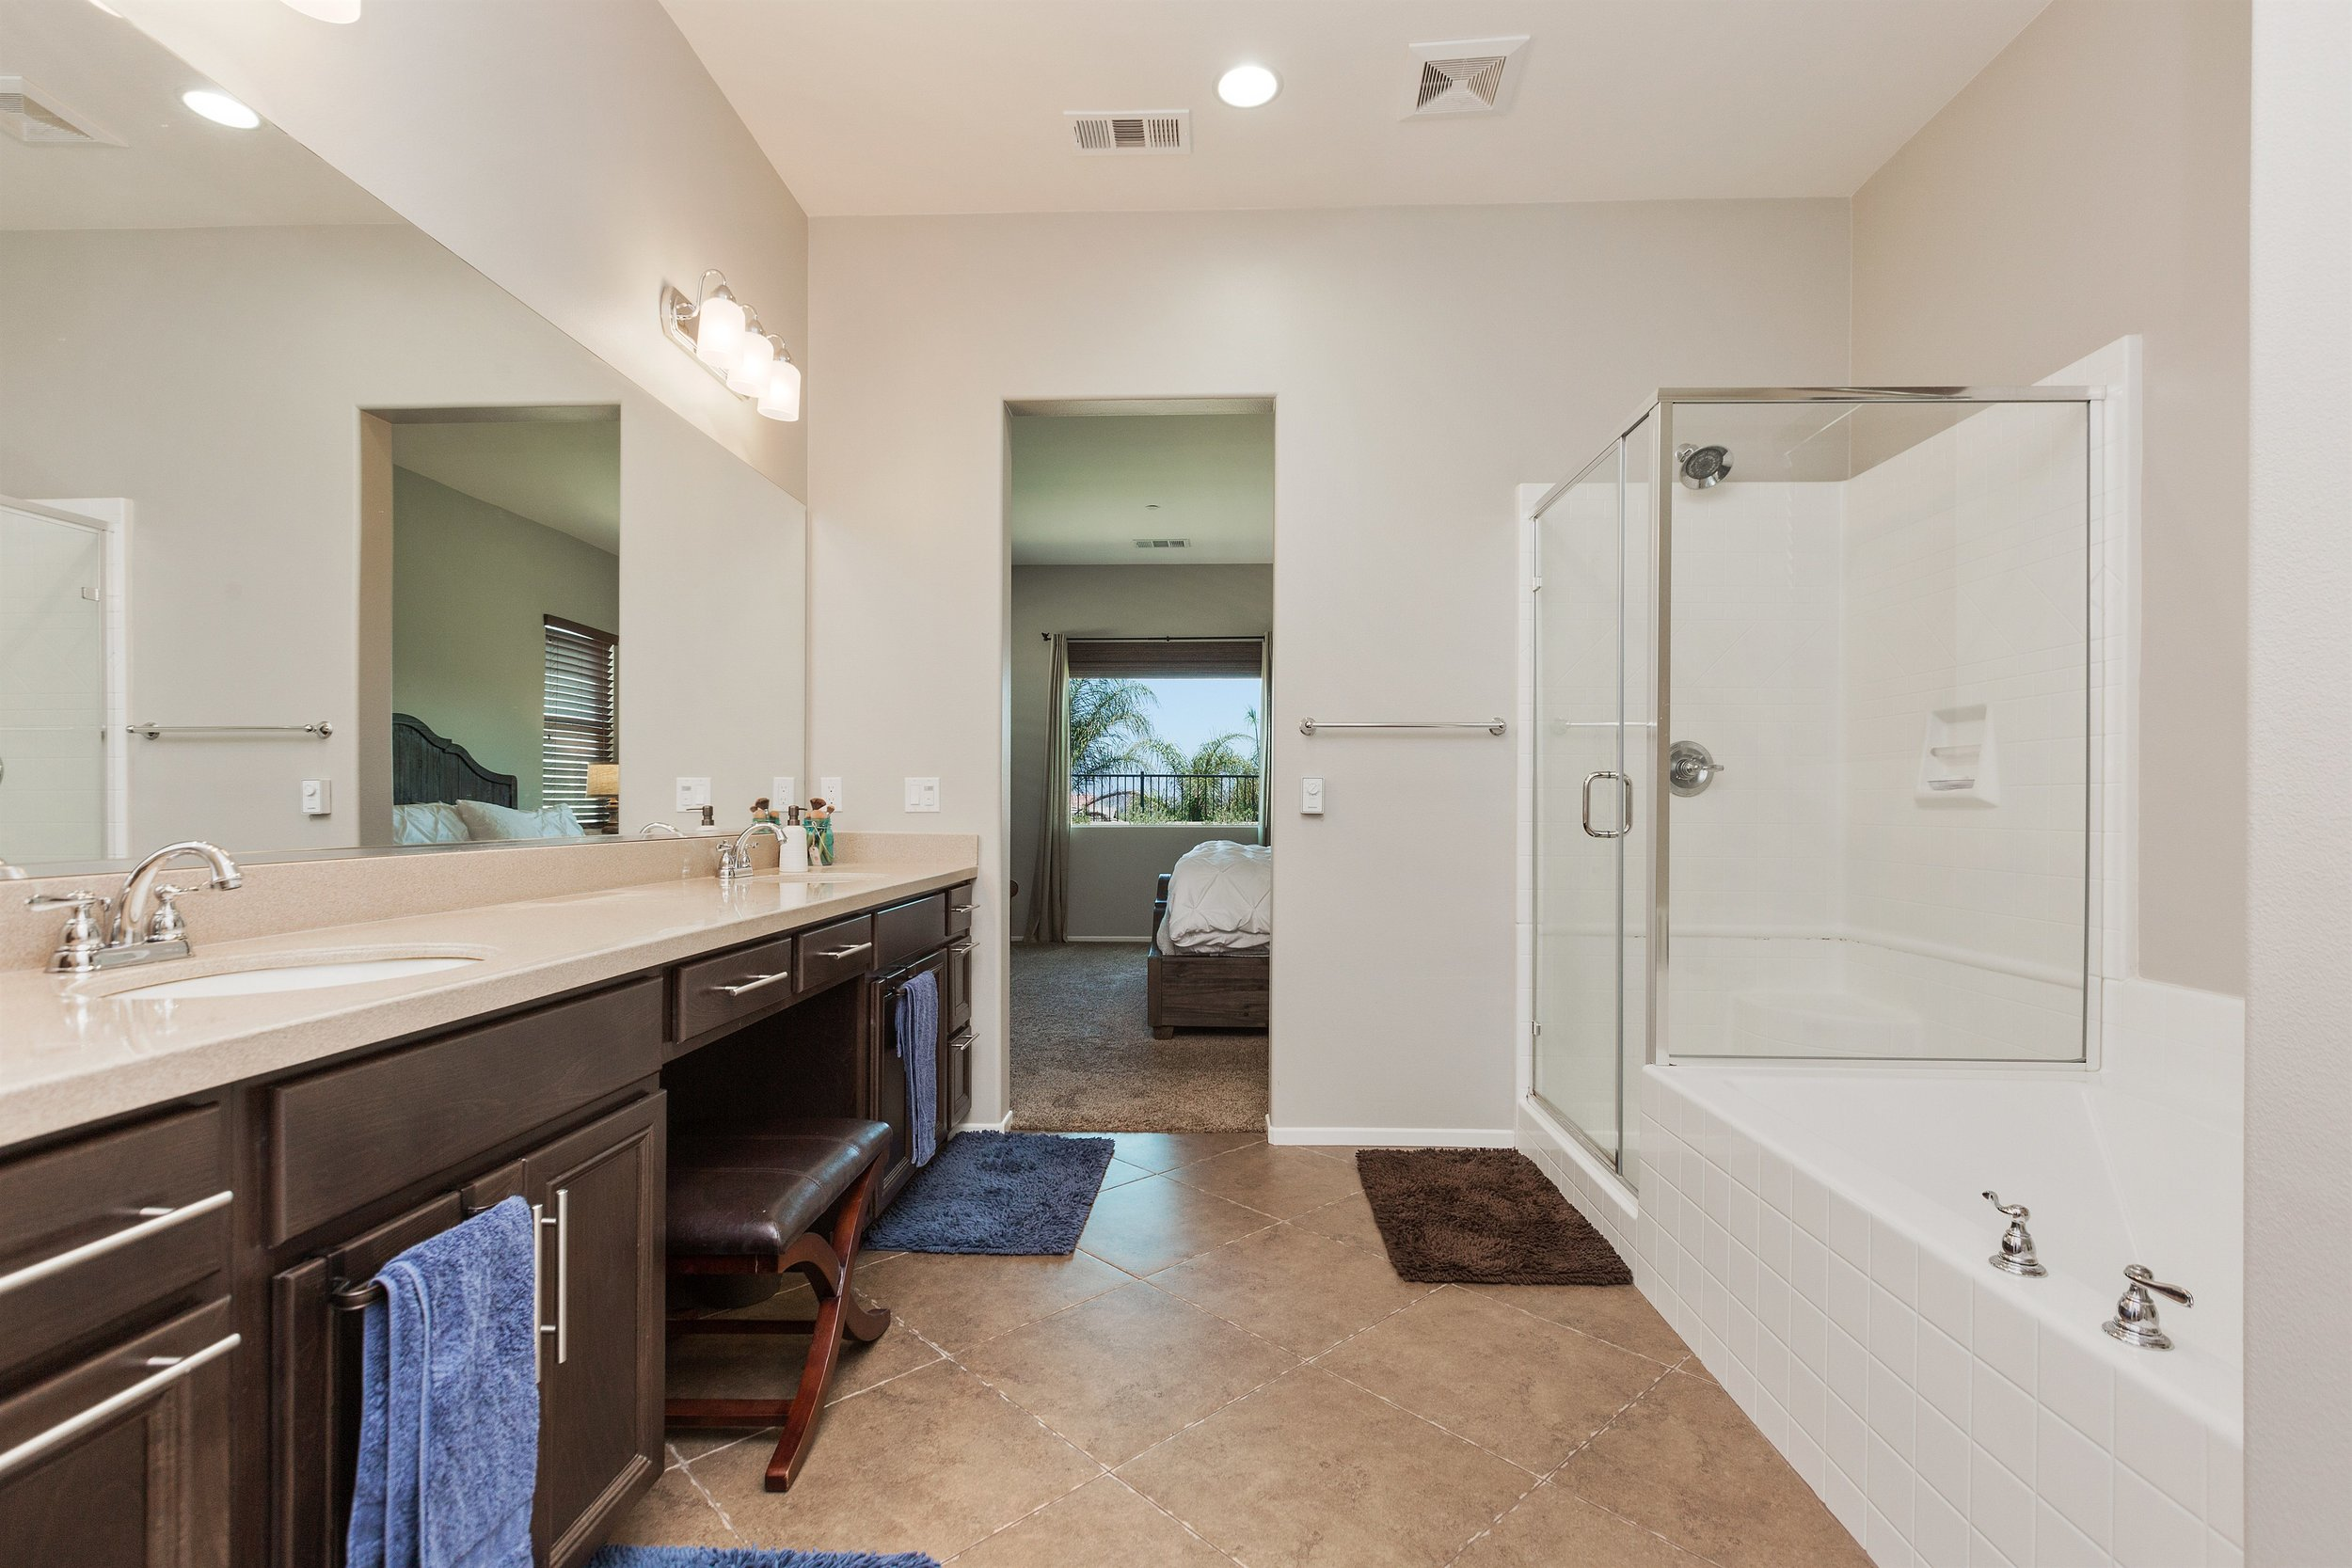 024_Master Bathroom .jpg